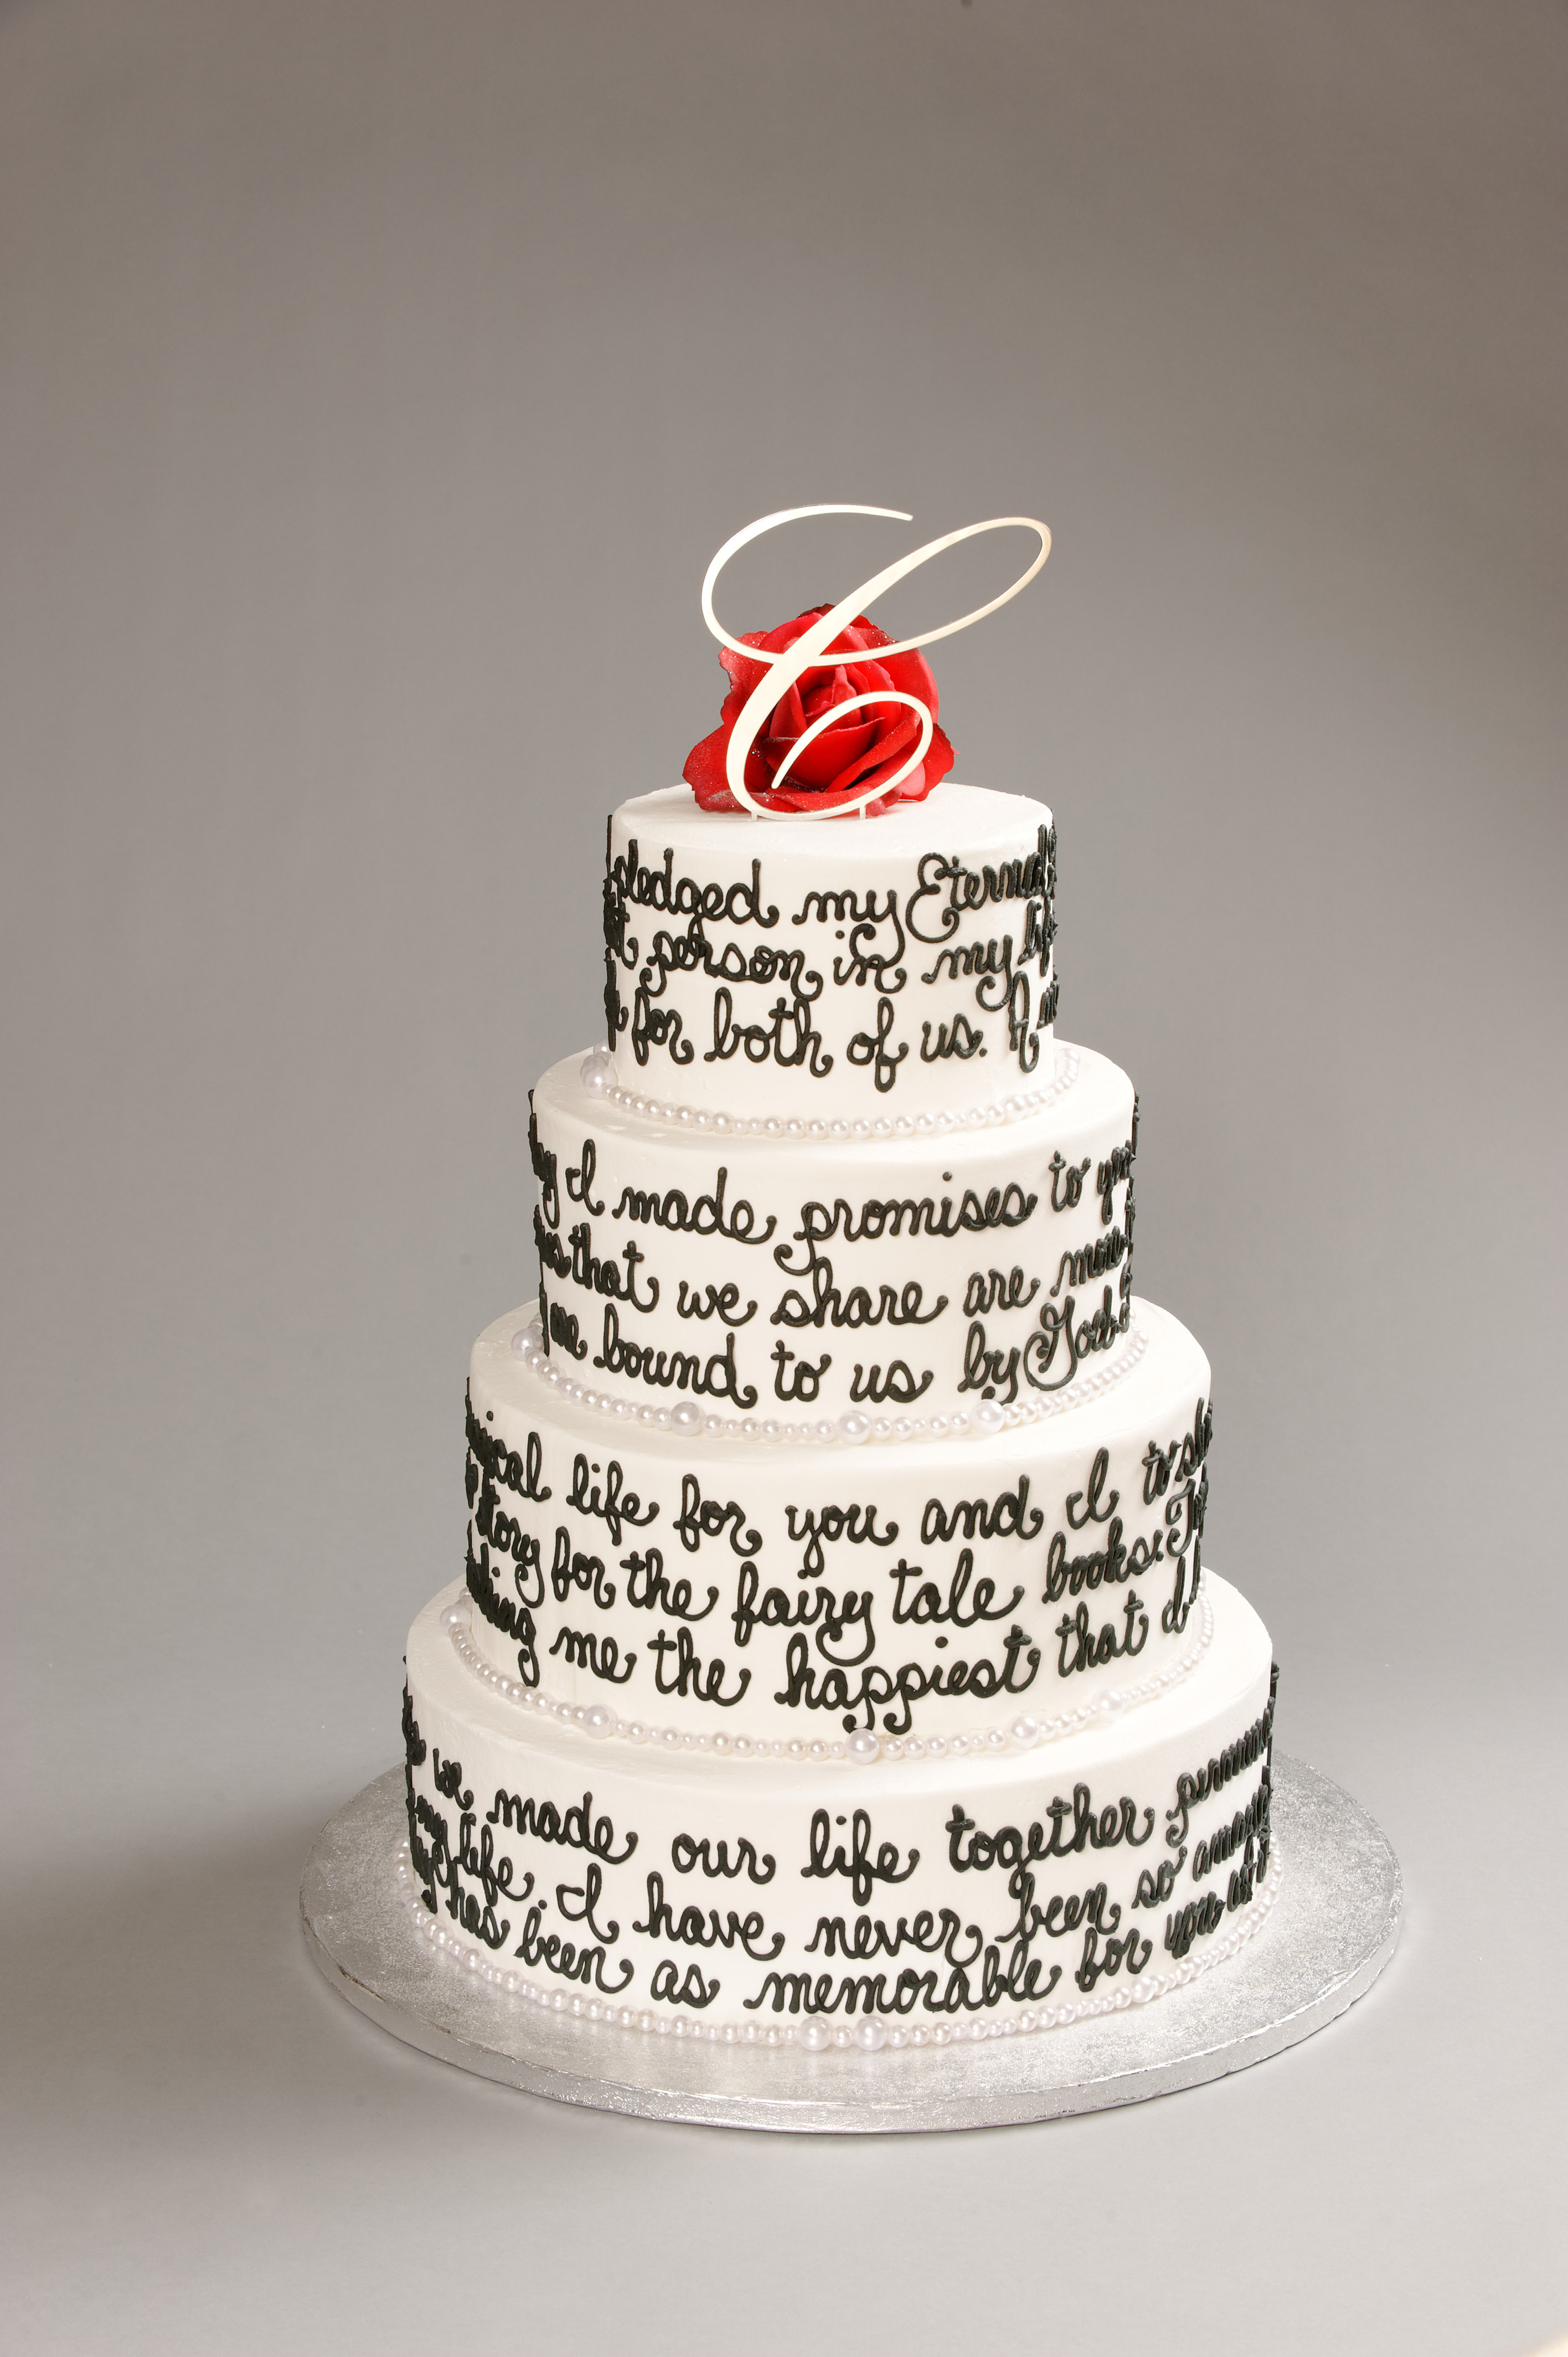 Pricing Sizes Wichita Wedding Cakes Birthday Cakes Wichita Kansas